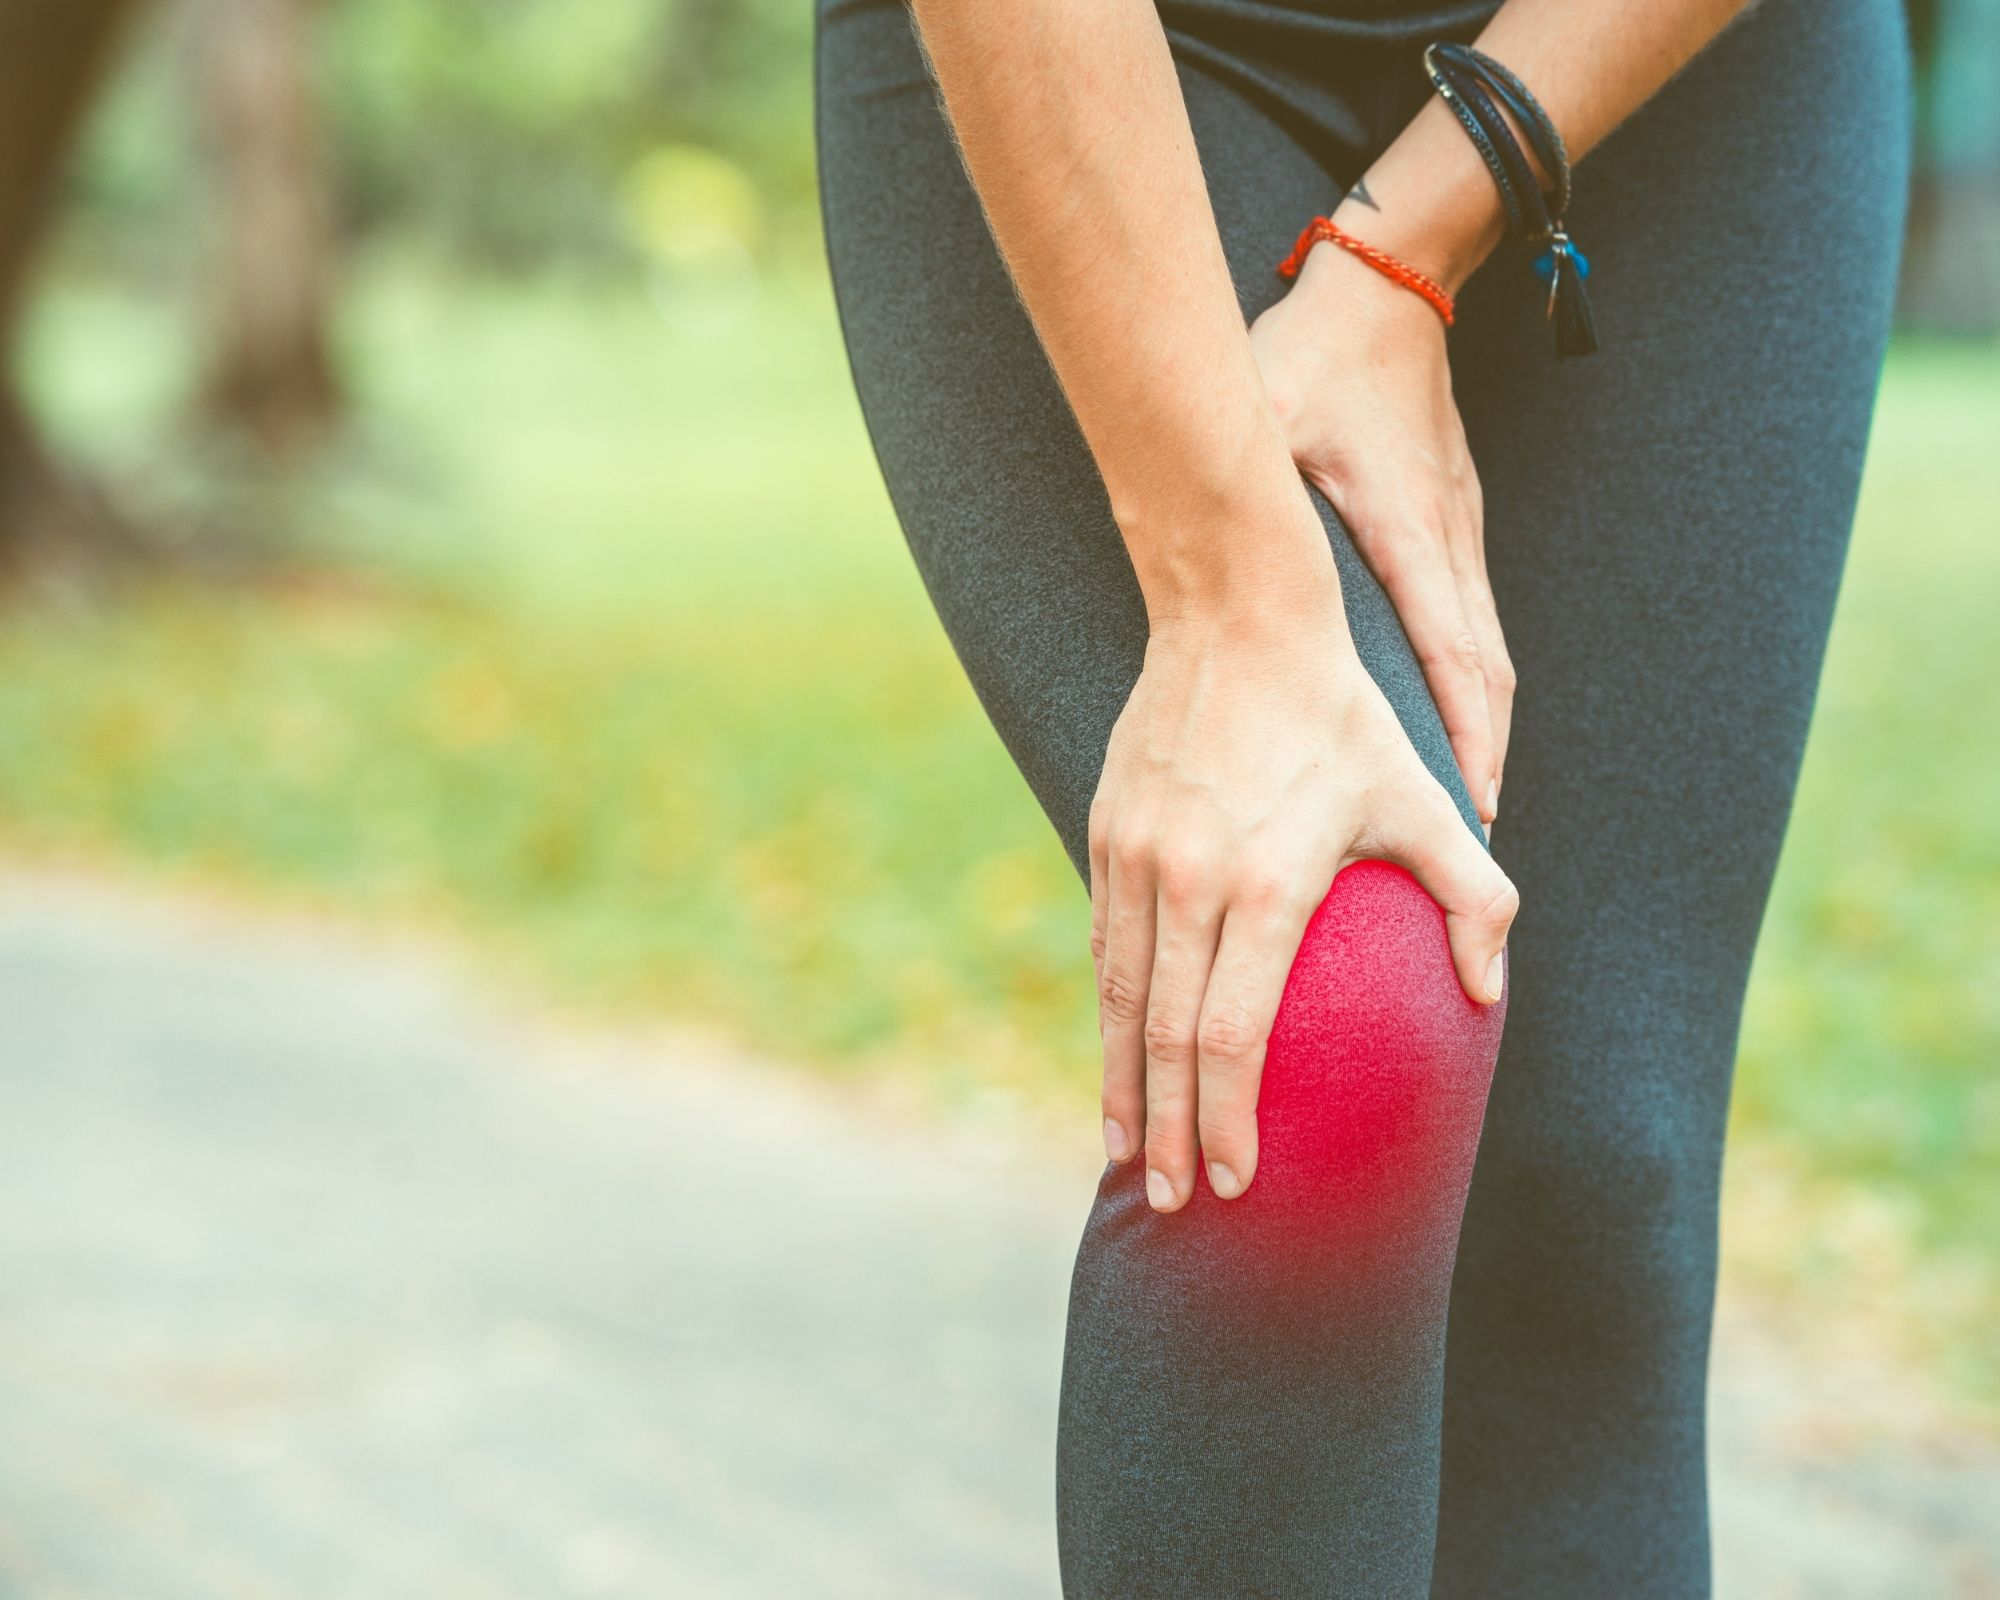 Knee with inflammation - Astaxanthin